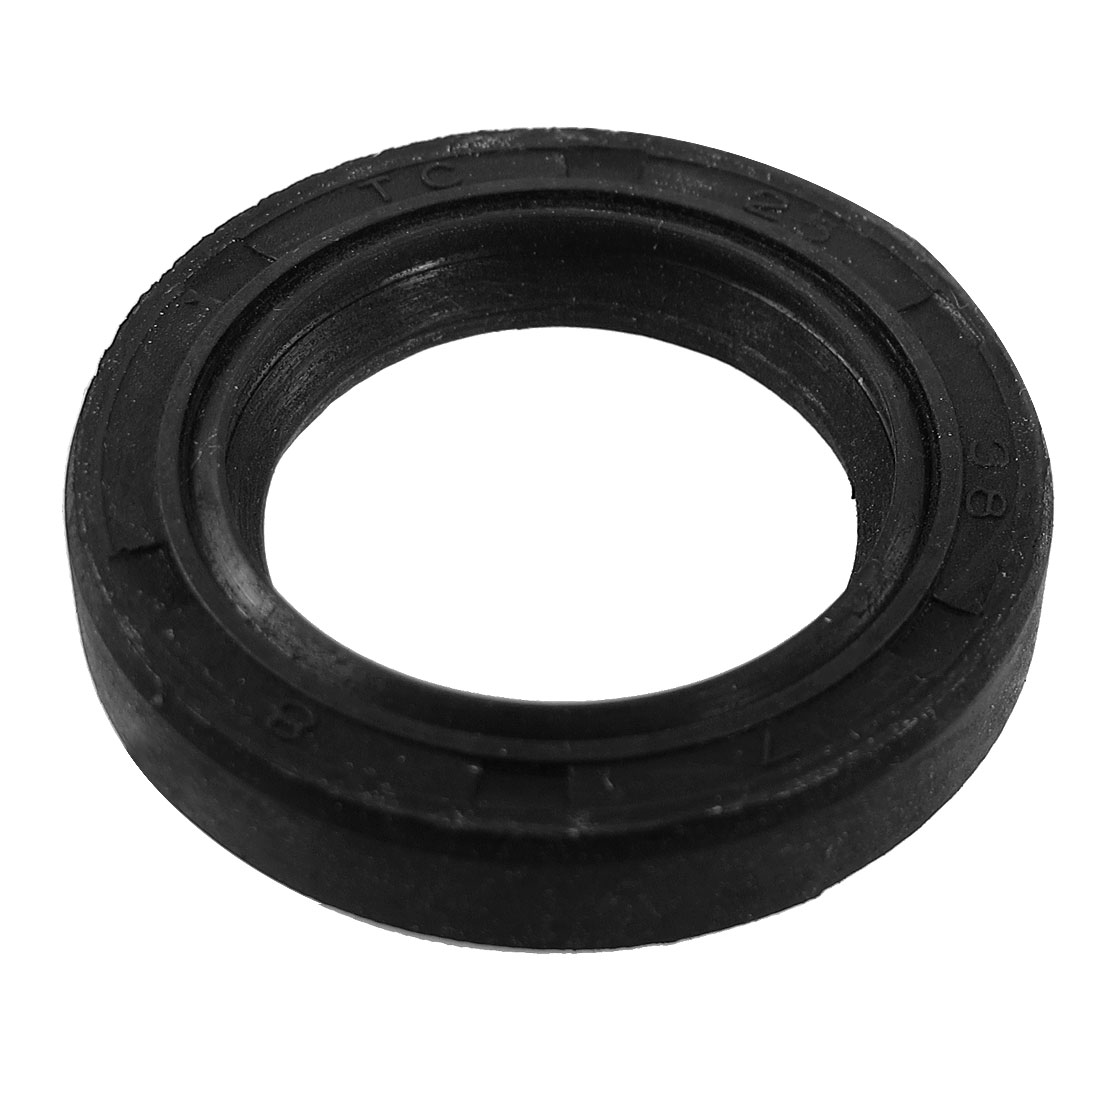 Steel Spring NBR Double Lip TC Oil Seal Black 25mm x 38mm x 8mm